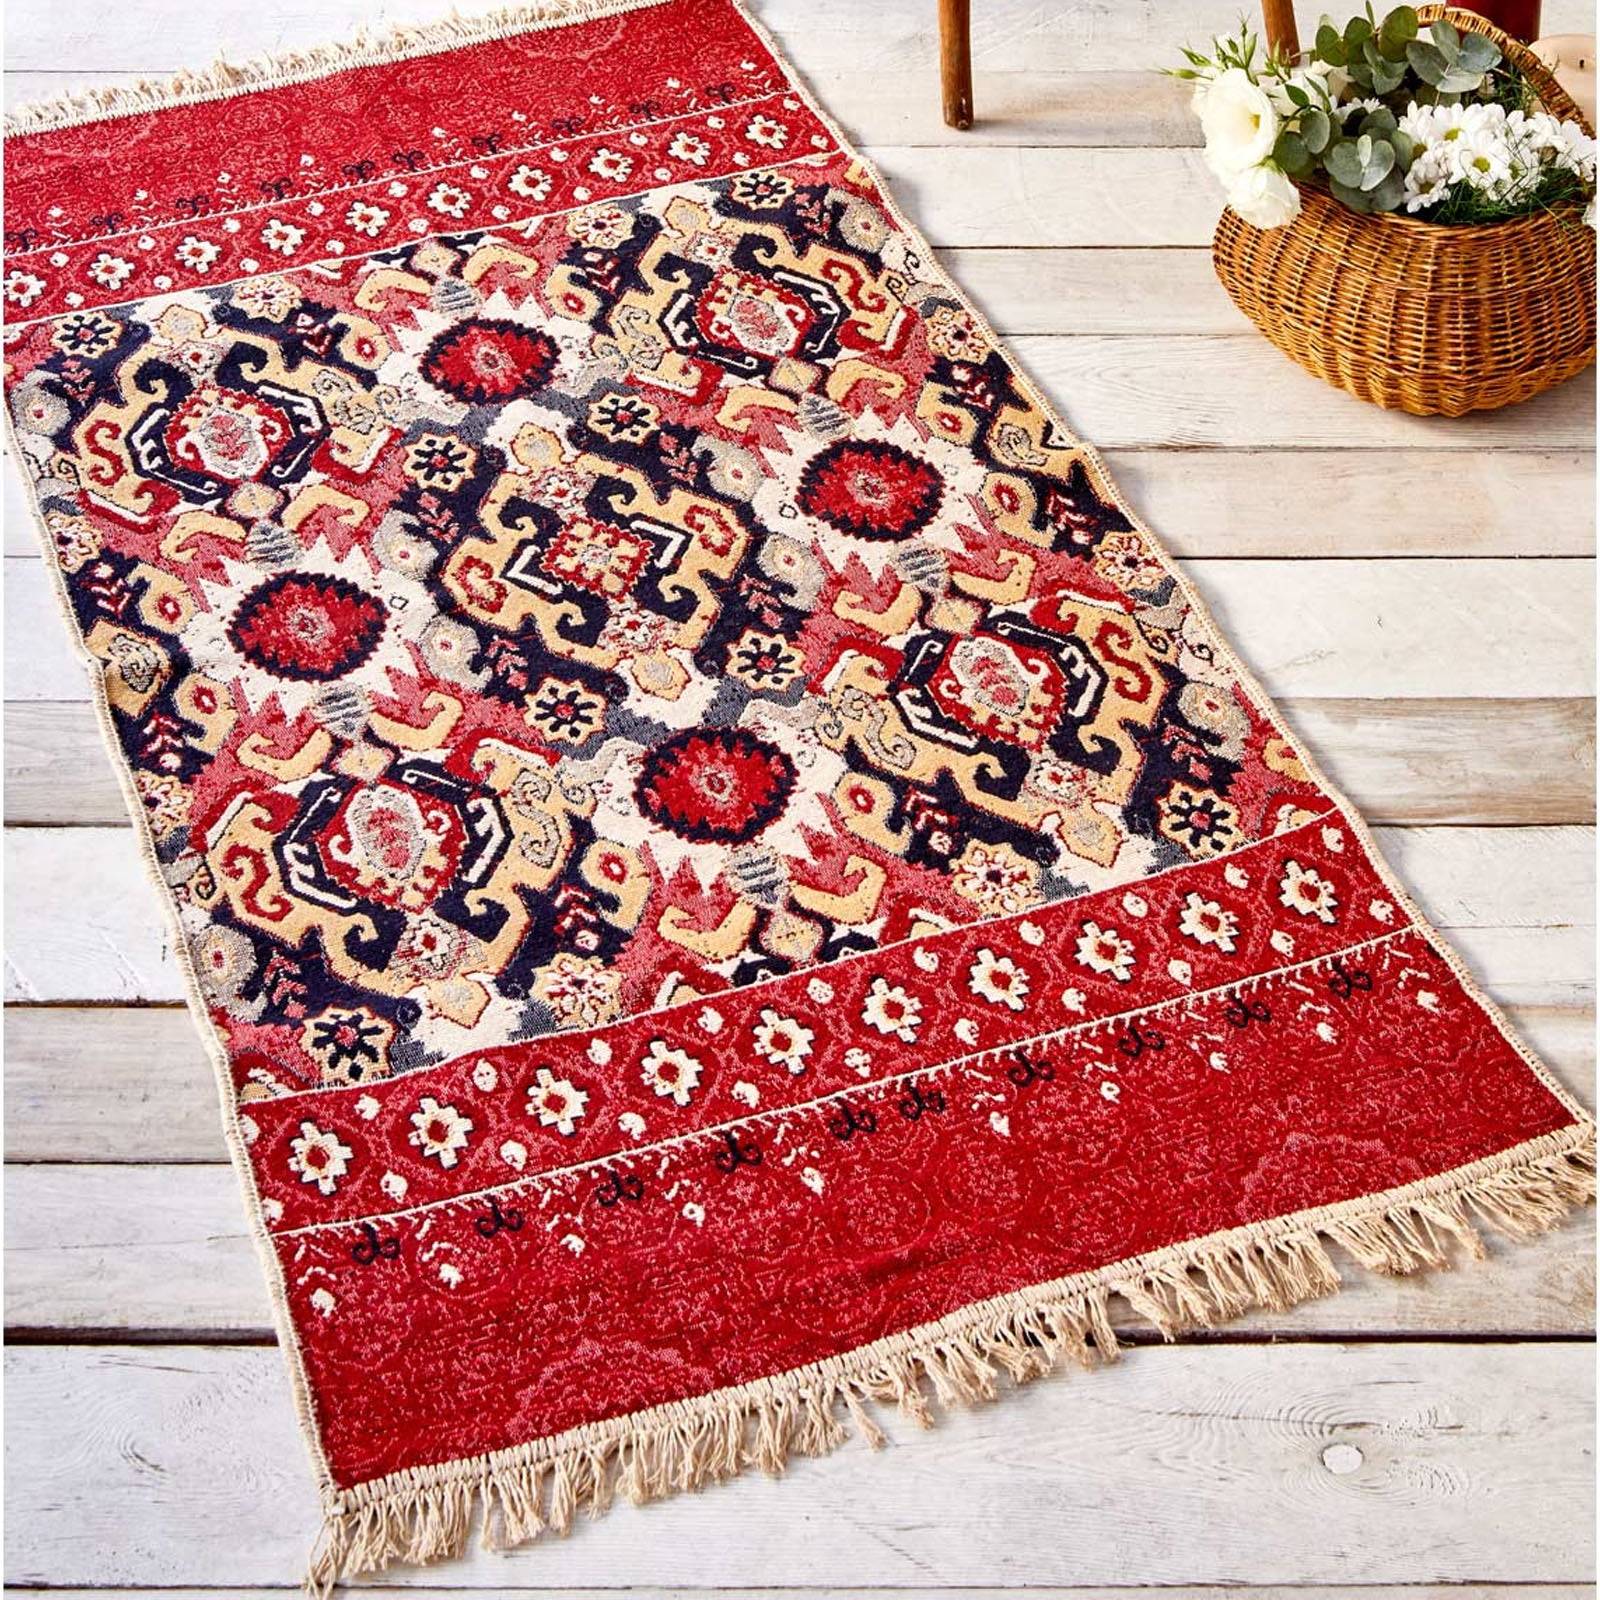 Karaca Home Anatolian Terken Double Face 85x150 cm Kilim 201.17.01.0121 -  كاراجا هوم سجادة أناتوليان تيركين مزدوجة الوجه 85*150 سم - Shop Online Furniture and Home Decor Store in Dubai, UAE at ebarza